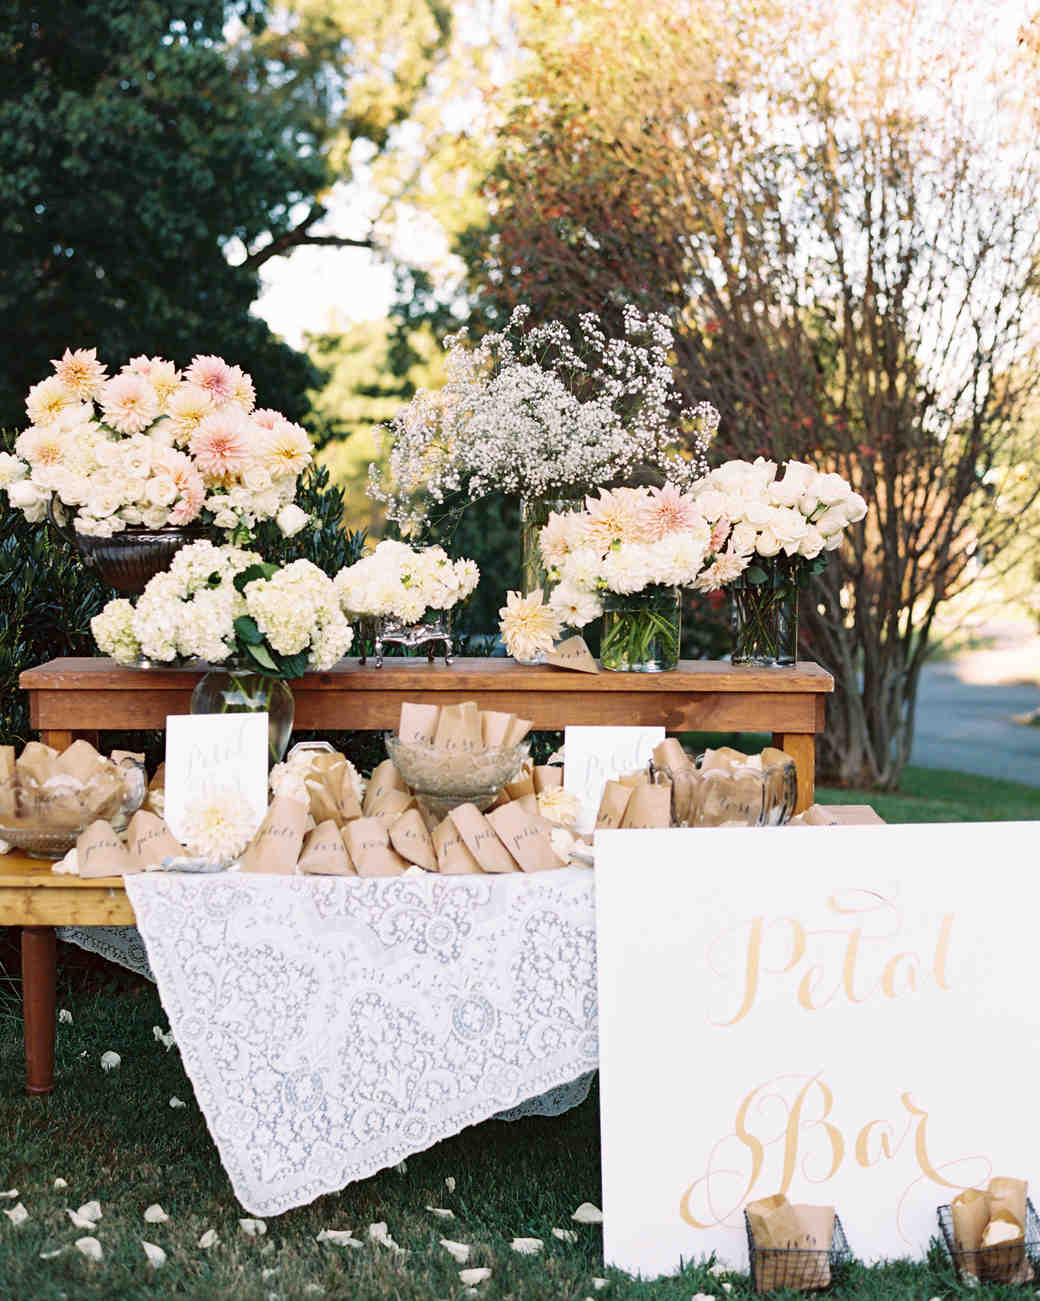 Wedding Ceremony Petal Bar with Sign, Bags of Flower Petals